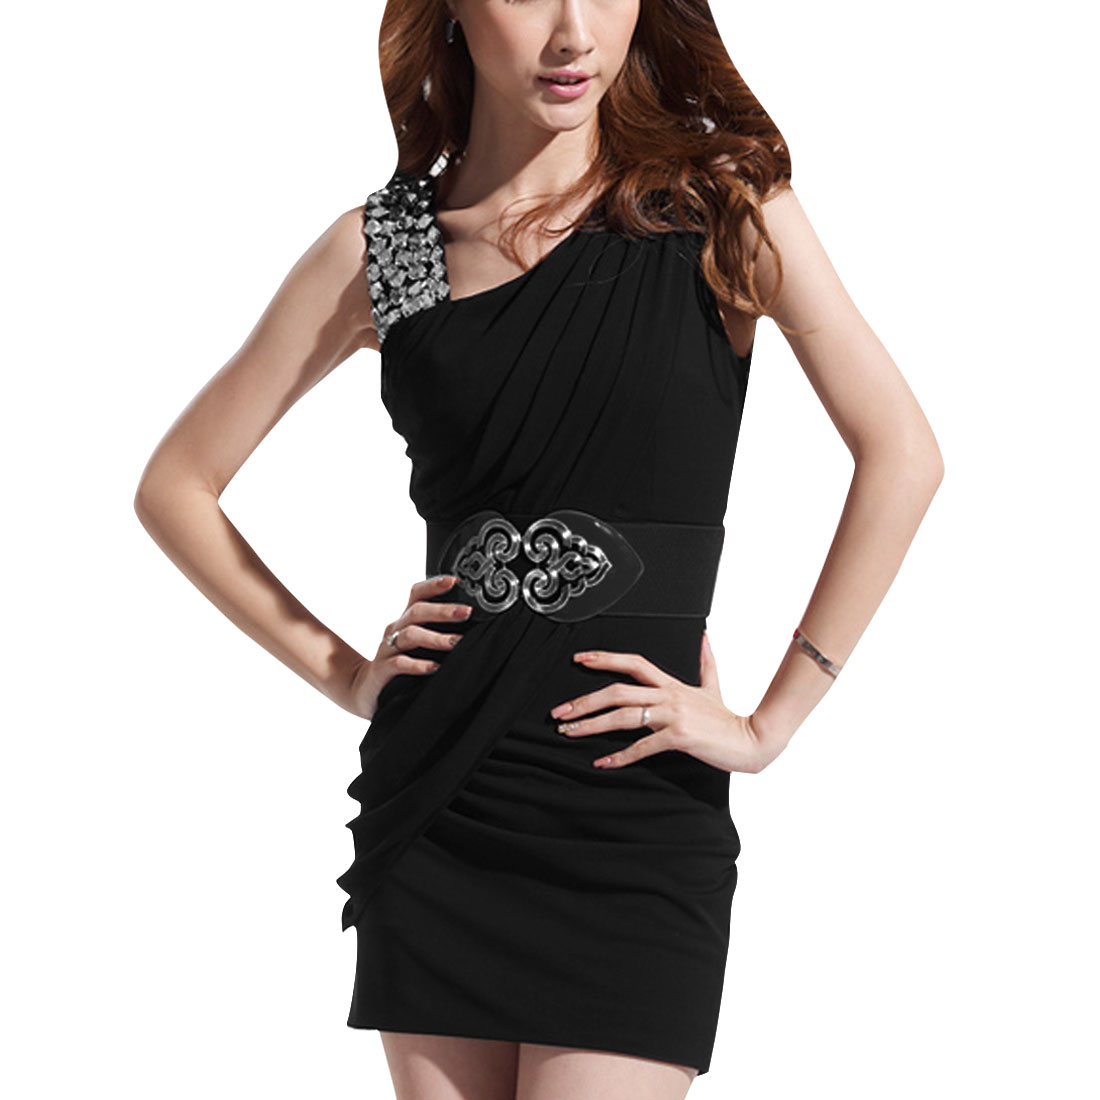 Women One Shoulder Rhinestone Decor Belt Dress Black XS